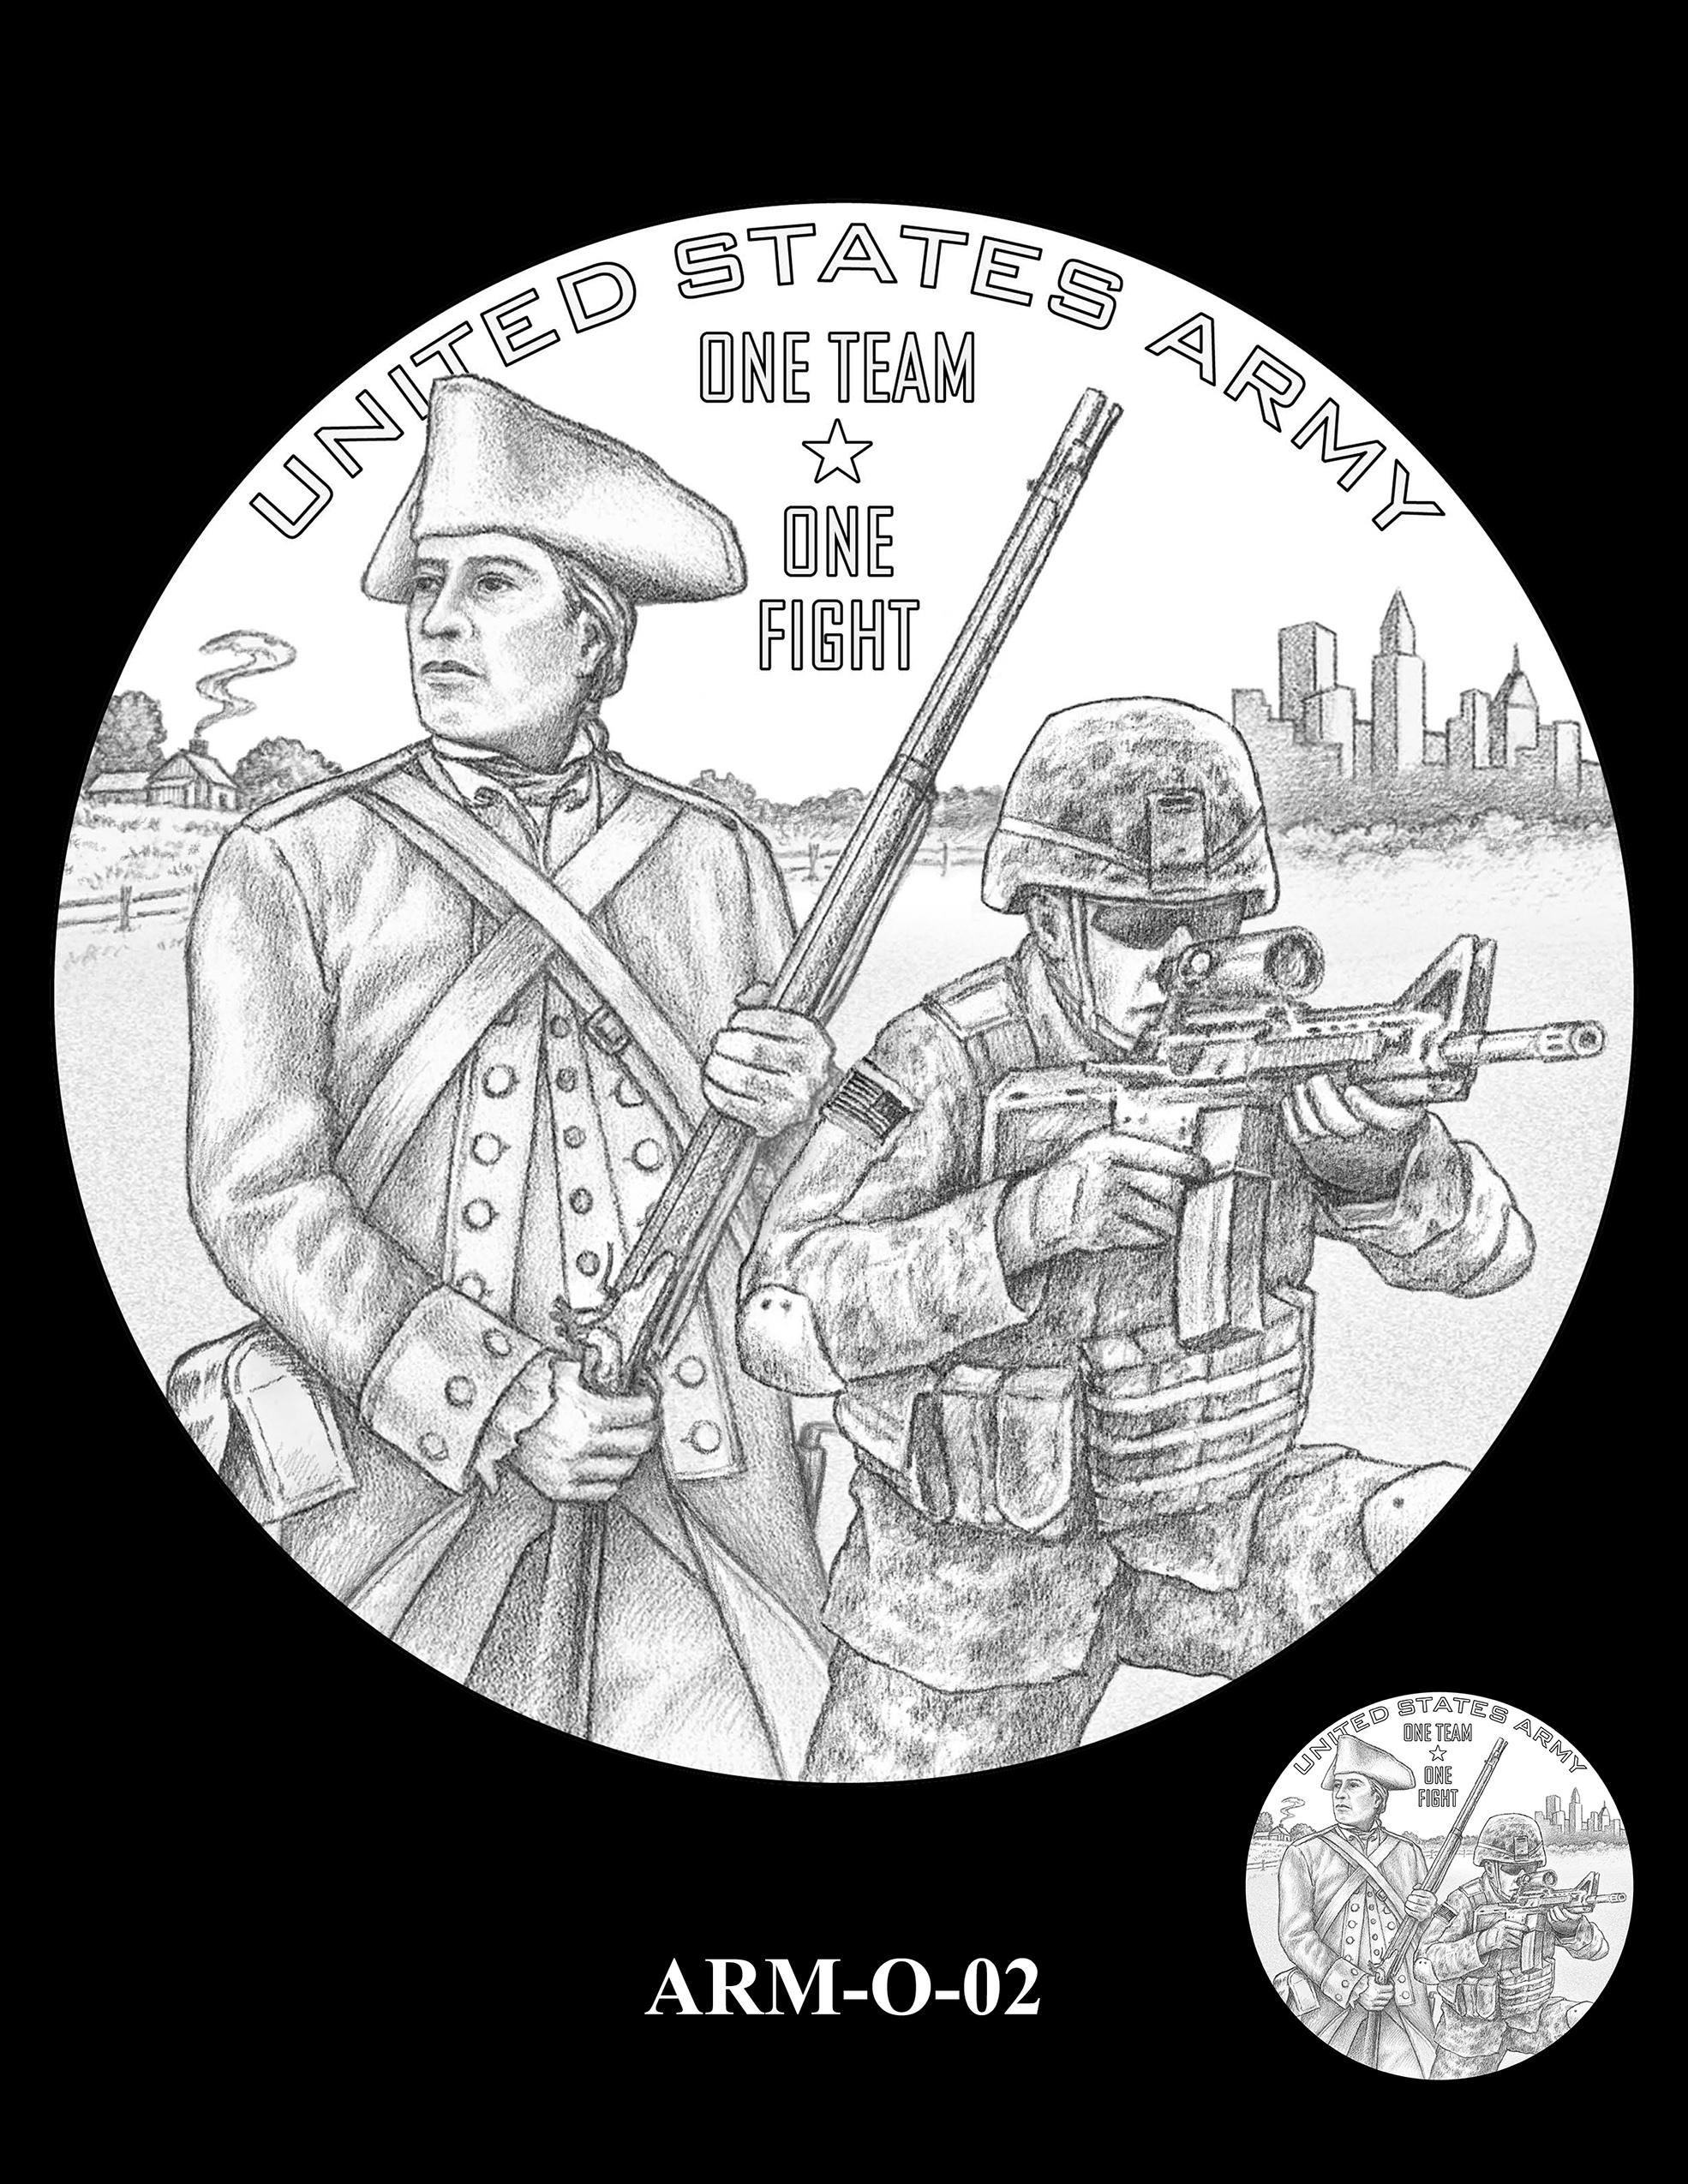 ARM-O-02 -- United States Army Silver Medal